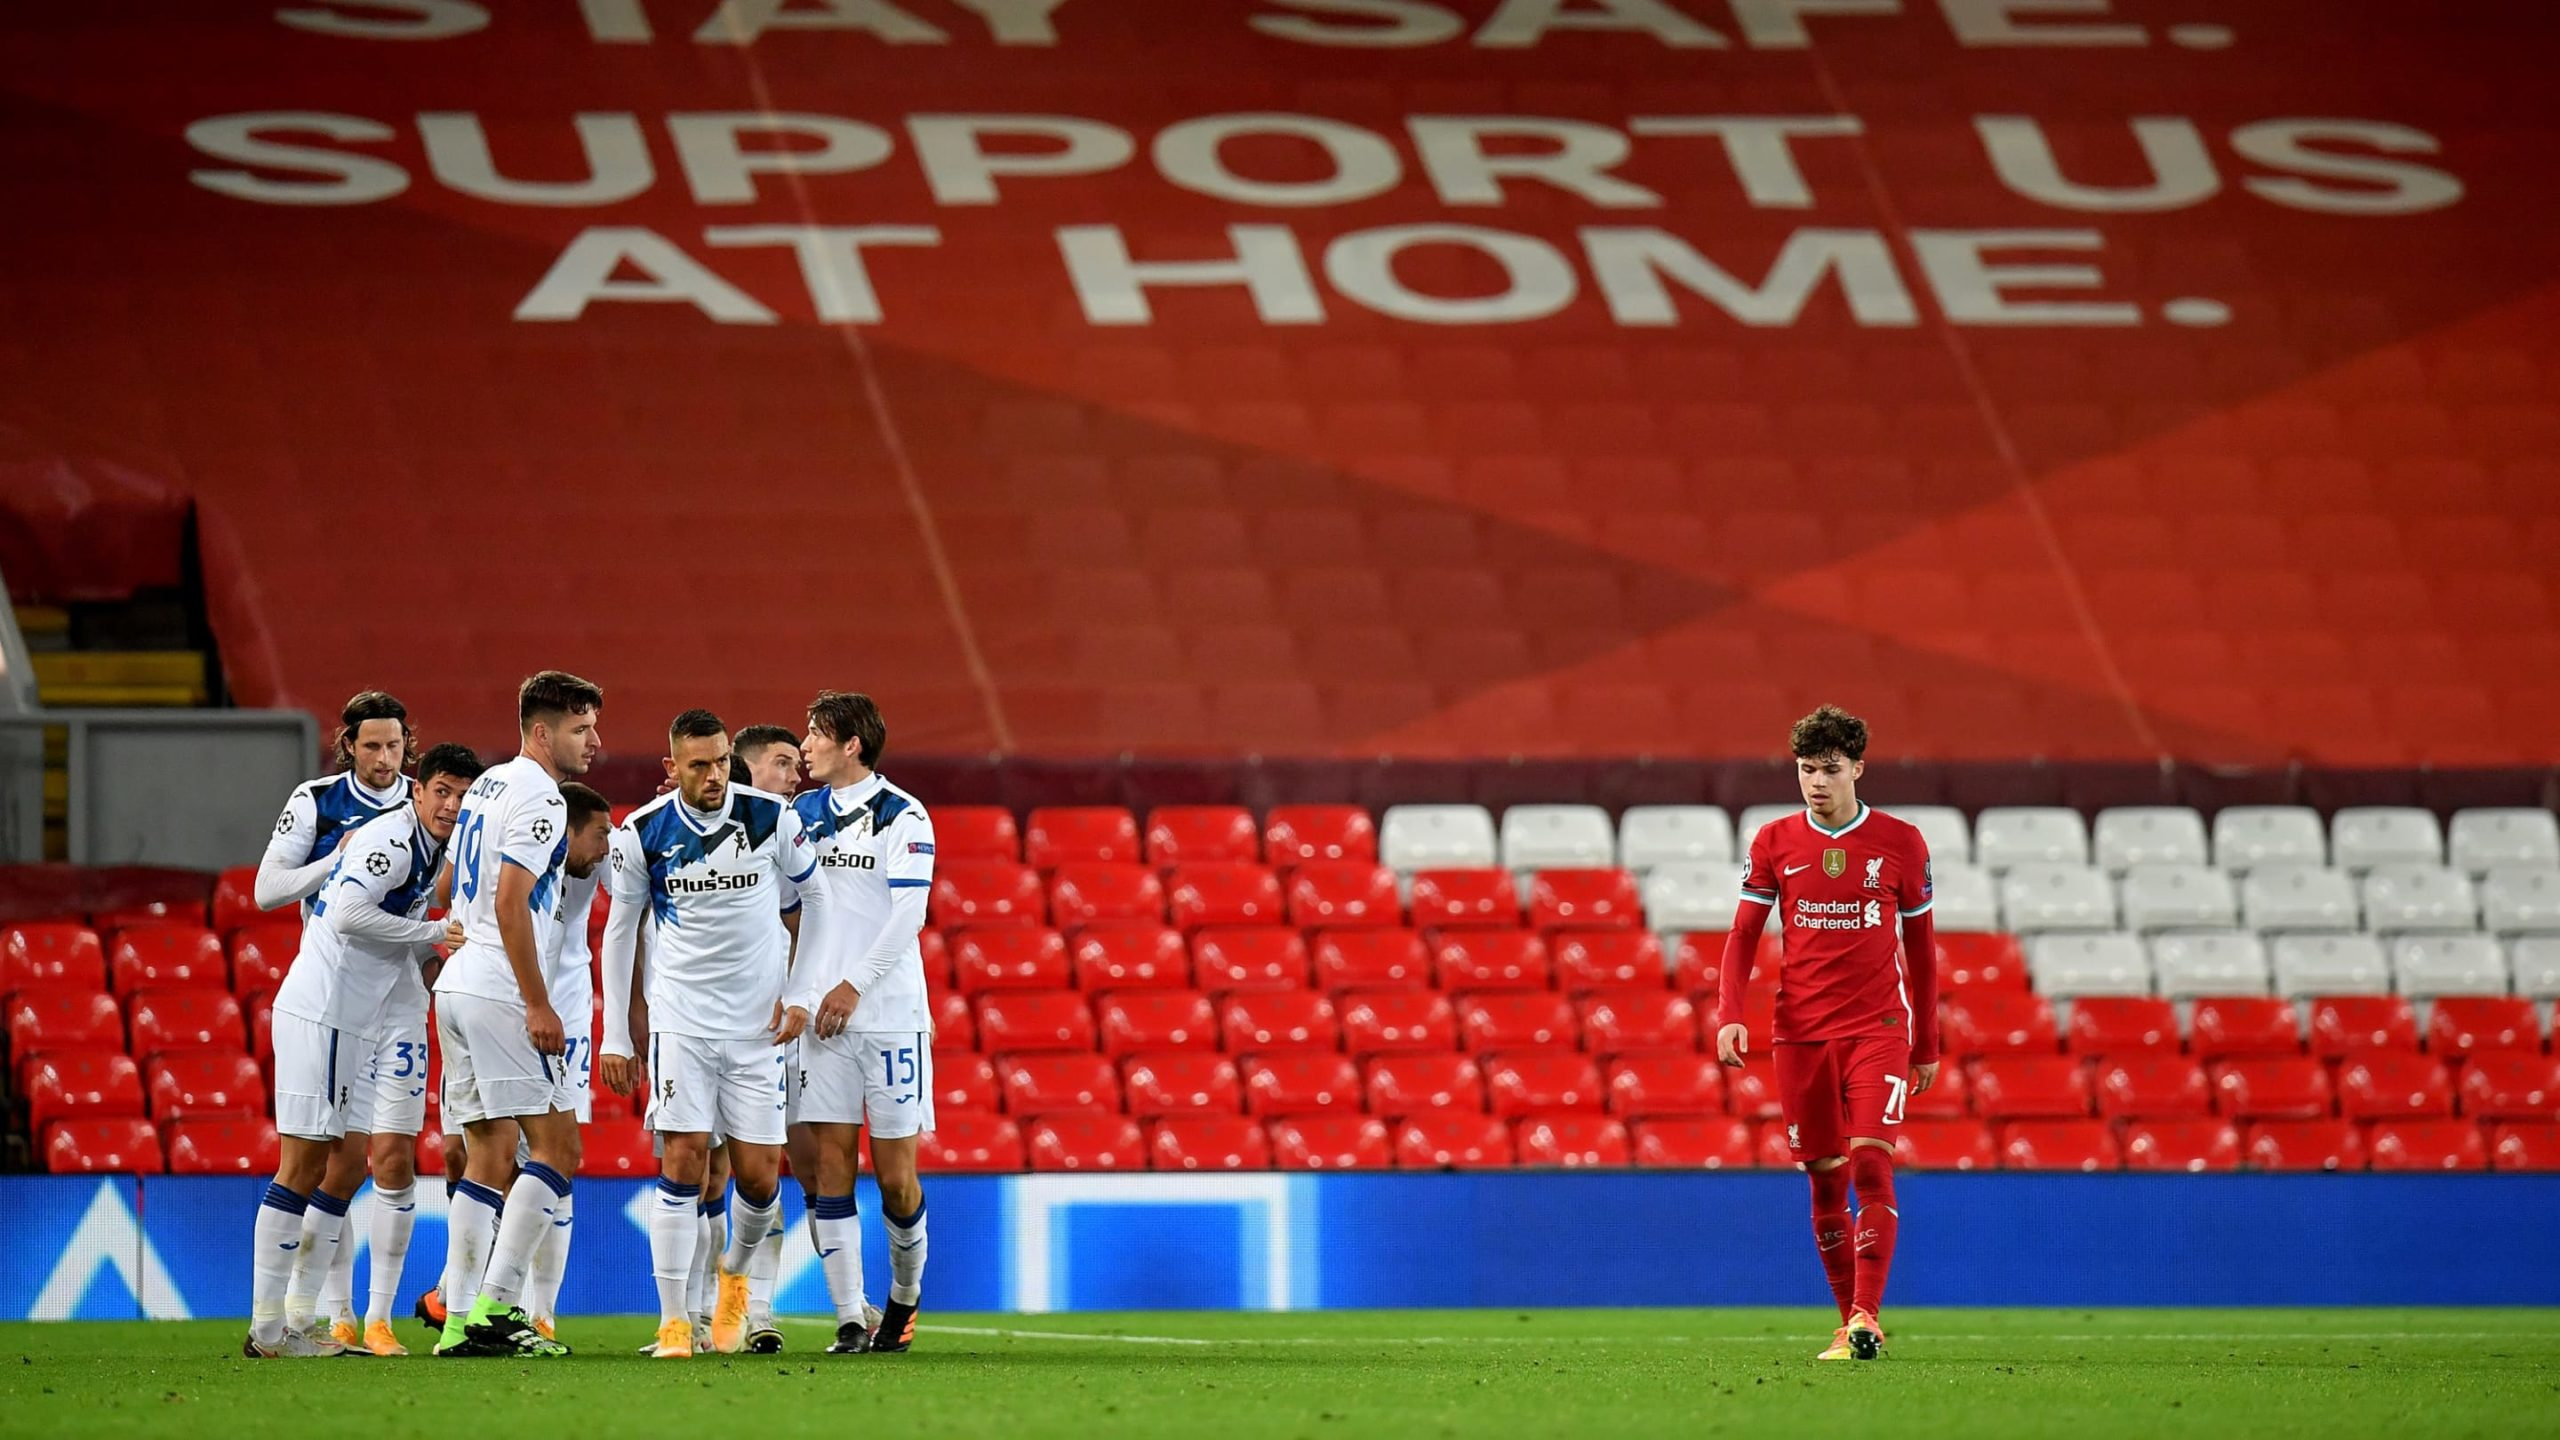 liverpool-0-2-atalanta-participant-ratings-as-reds-lumber-to-champions-league-defeat.jpg